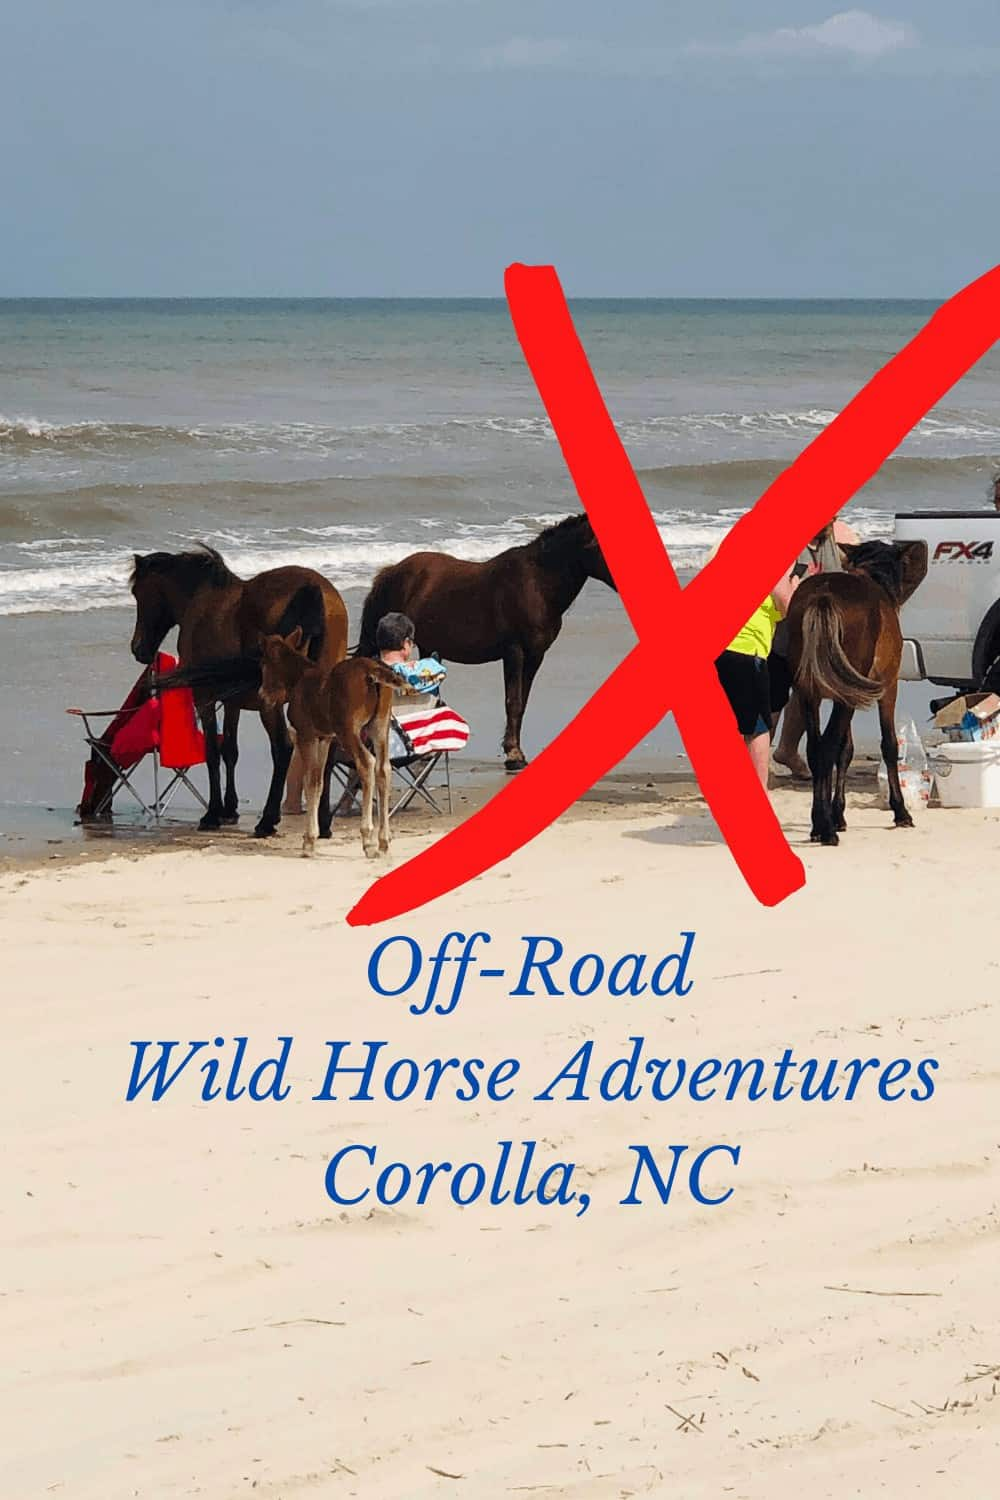 People feeding Wild Horses on Northern Carova beach in North Carolina